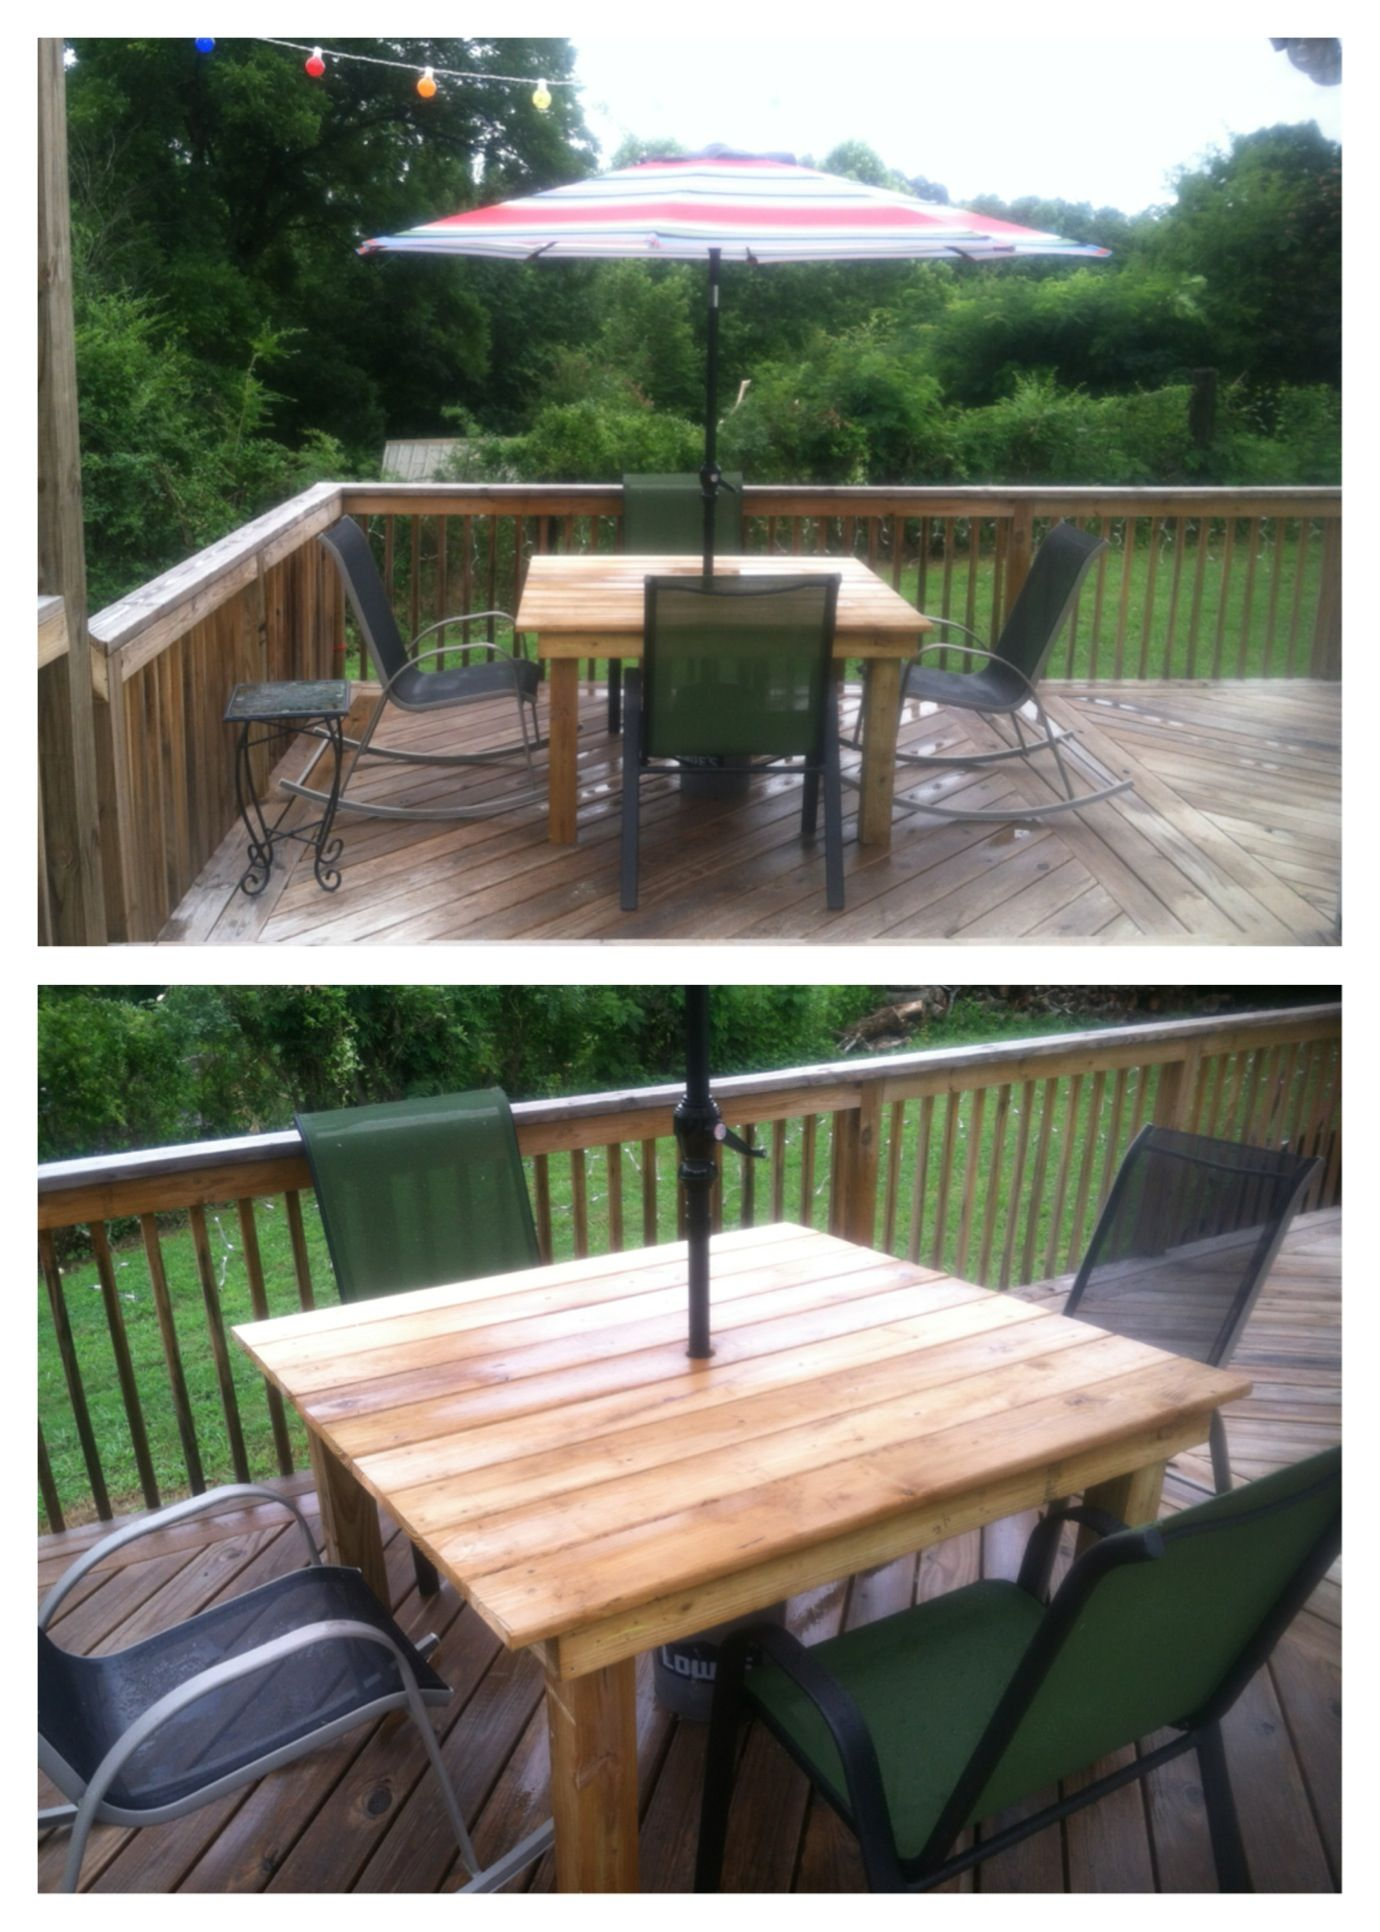 Patio table made from scrap lumber Umbrella bought at Academy